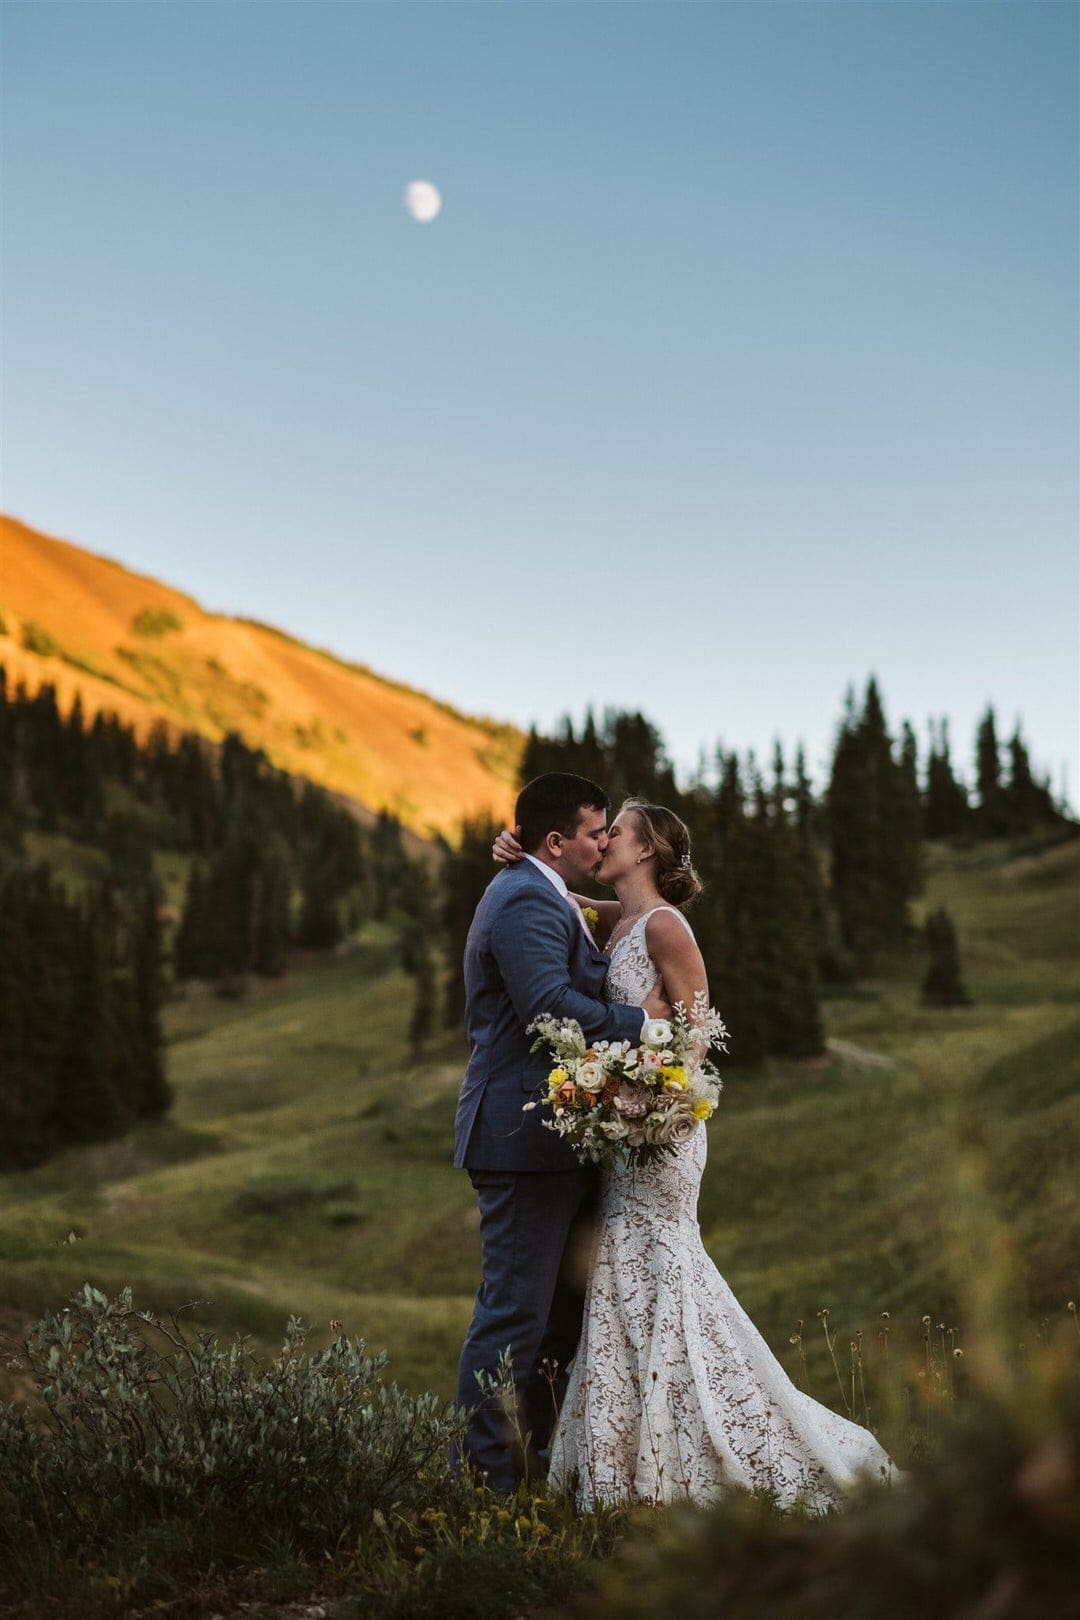 Adventure elopement photography in the Colorado mountains.